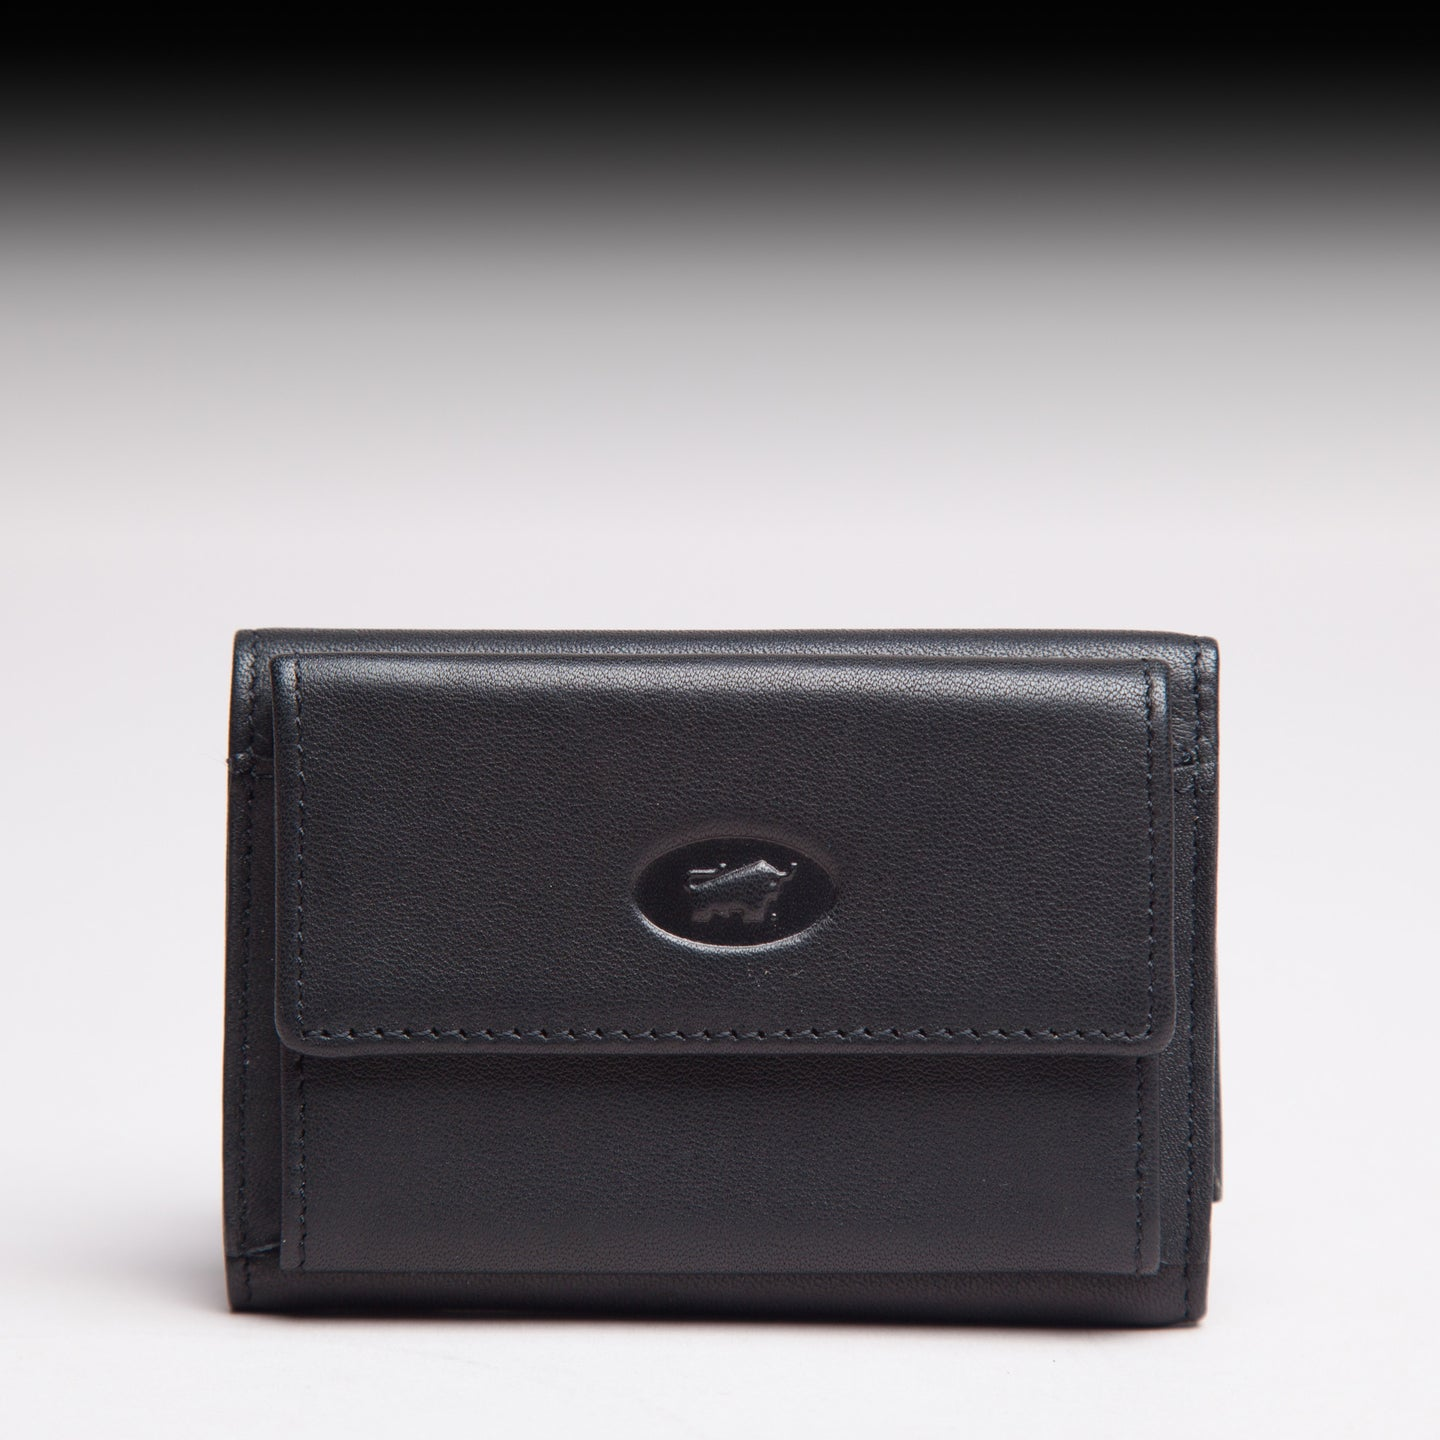 Braun Büffel Black German Leather small wallet